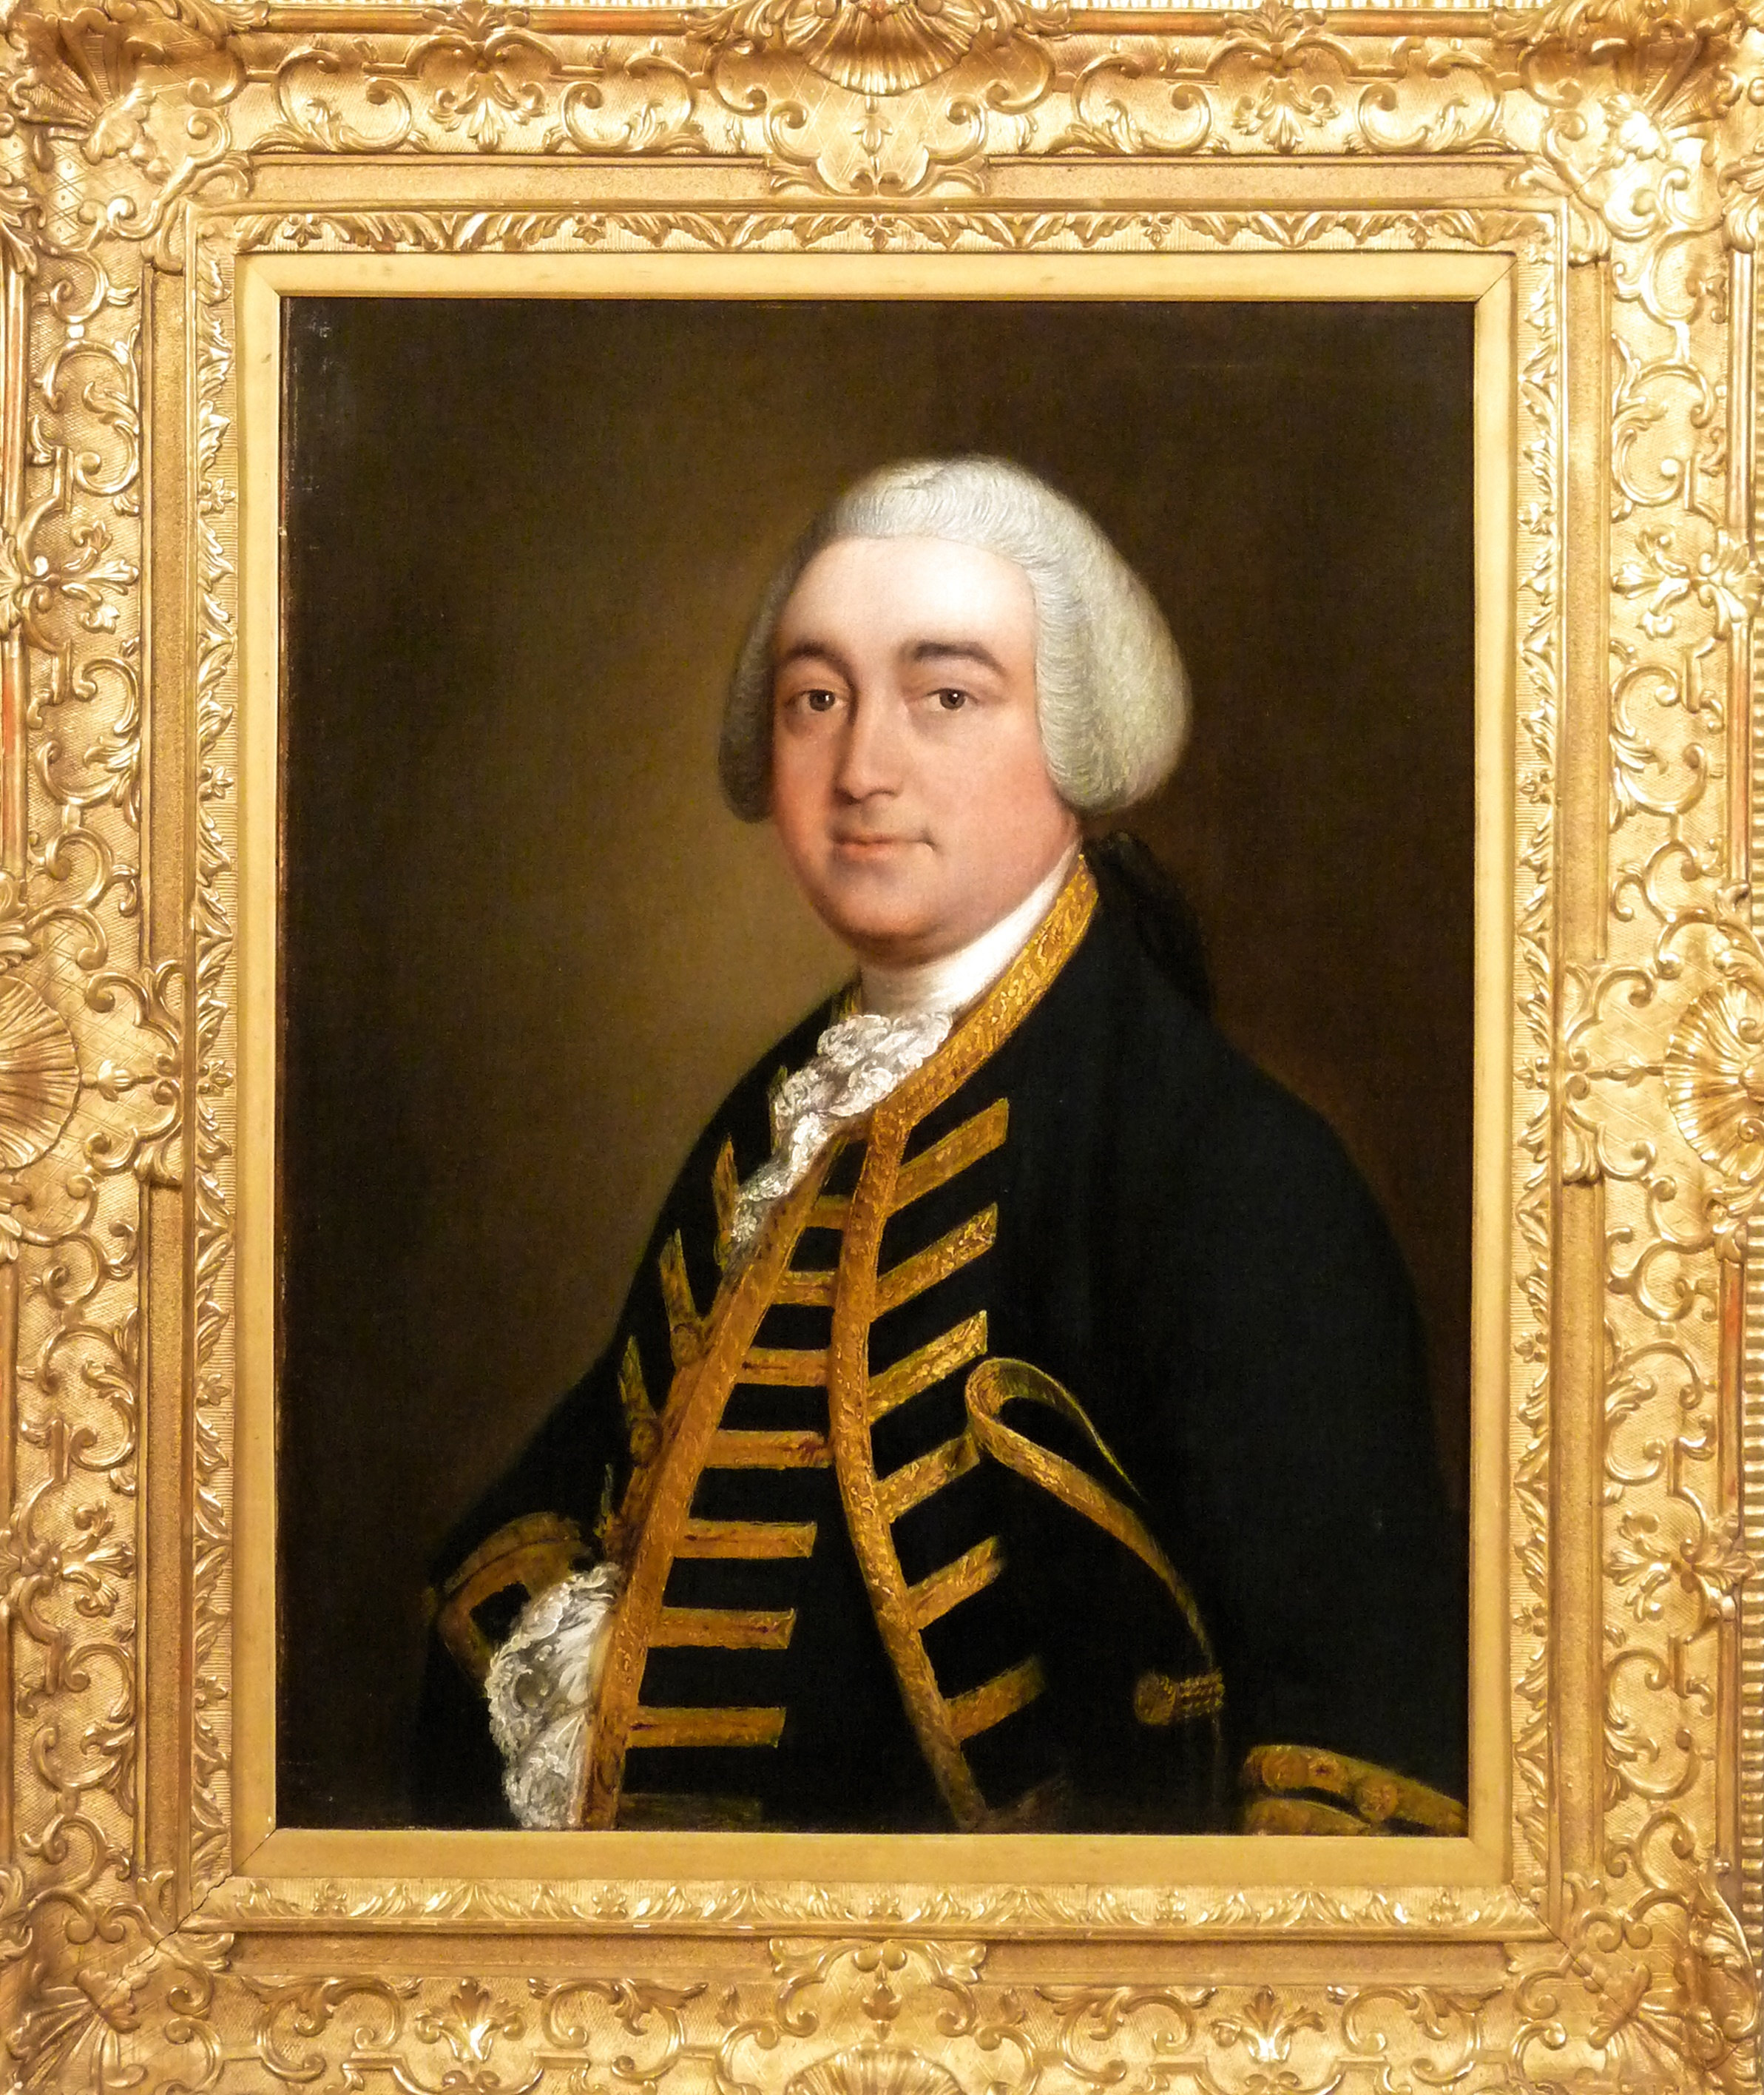 Thomas Gainsborough, a portrait of Christopher Griffith Jnr of Padworth